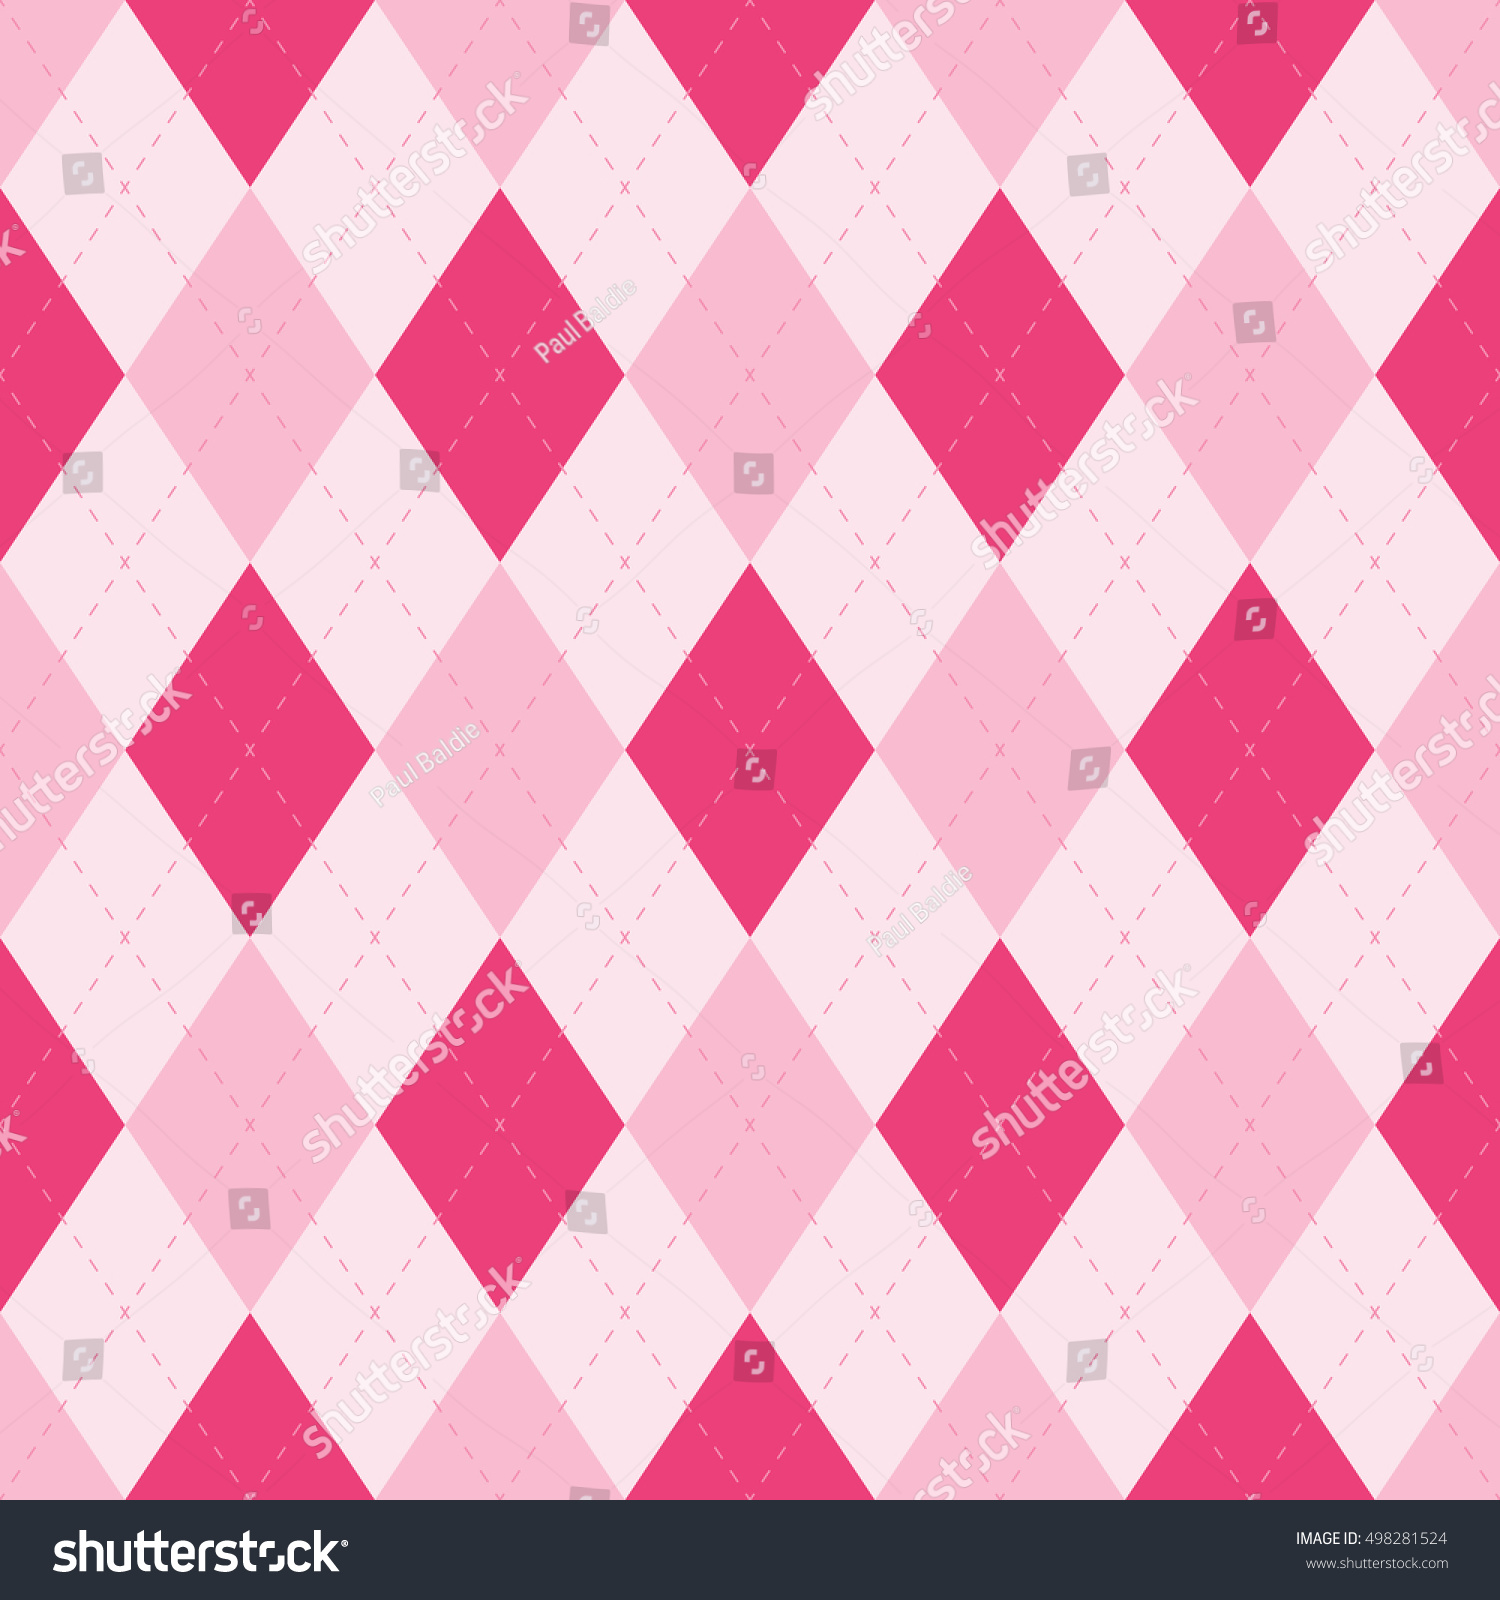 Seamless Argyle Sweater Fabric Stitches Pattern Stock Vector ...